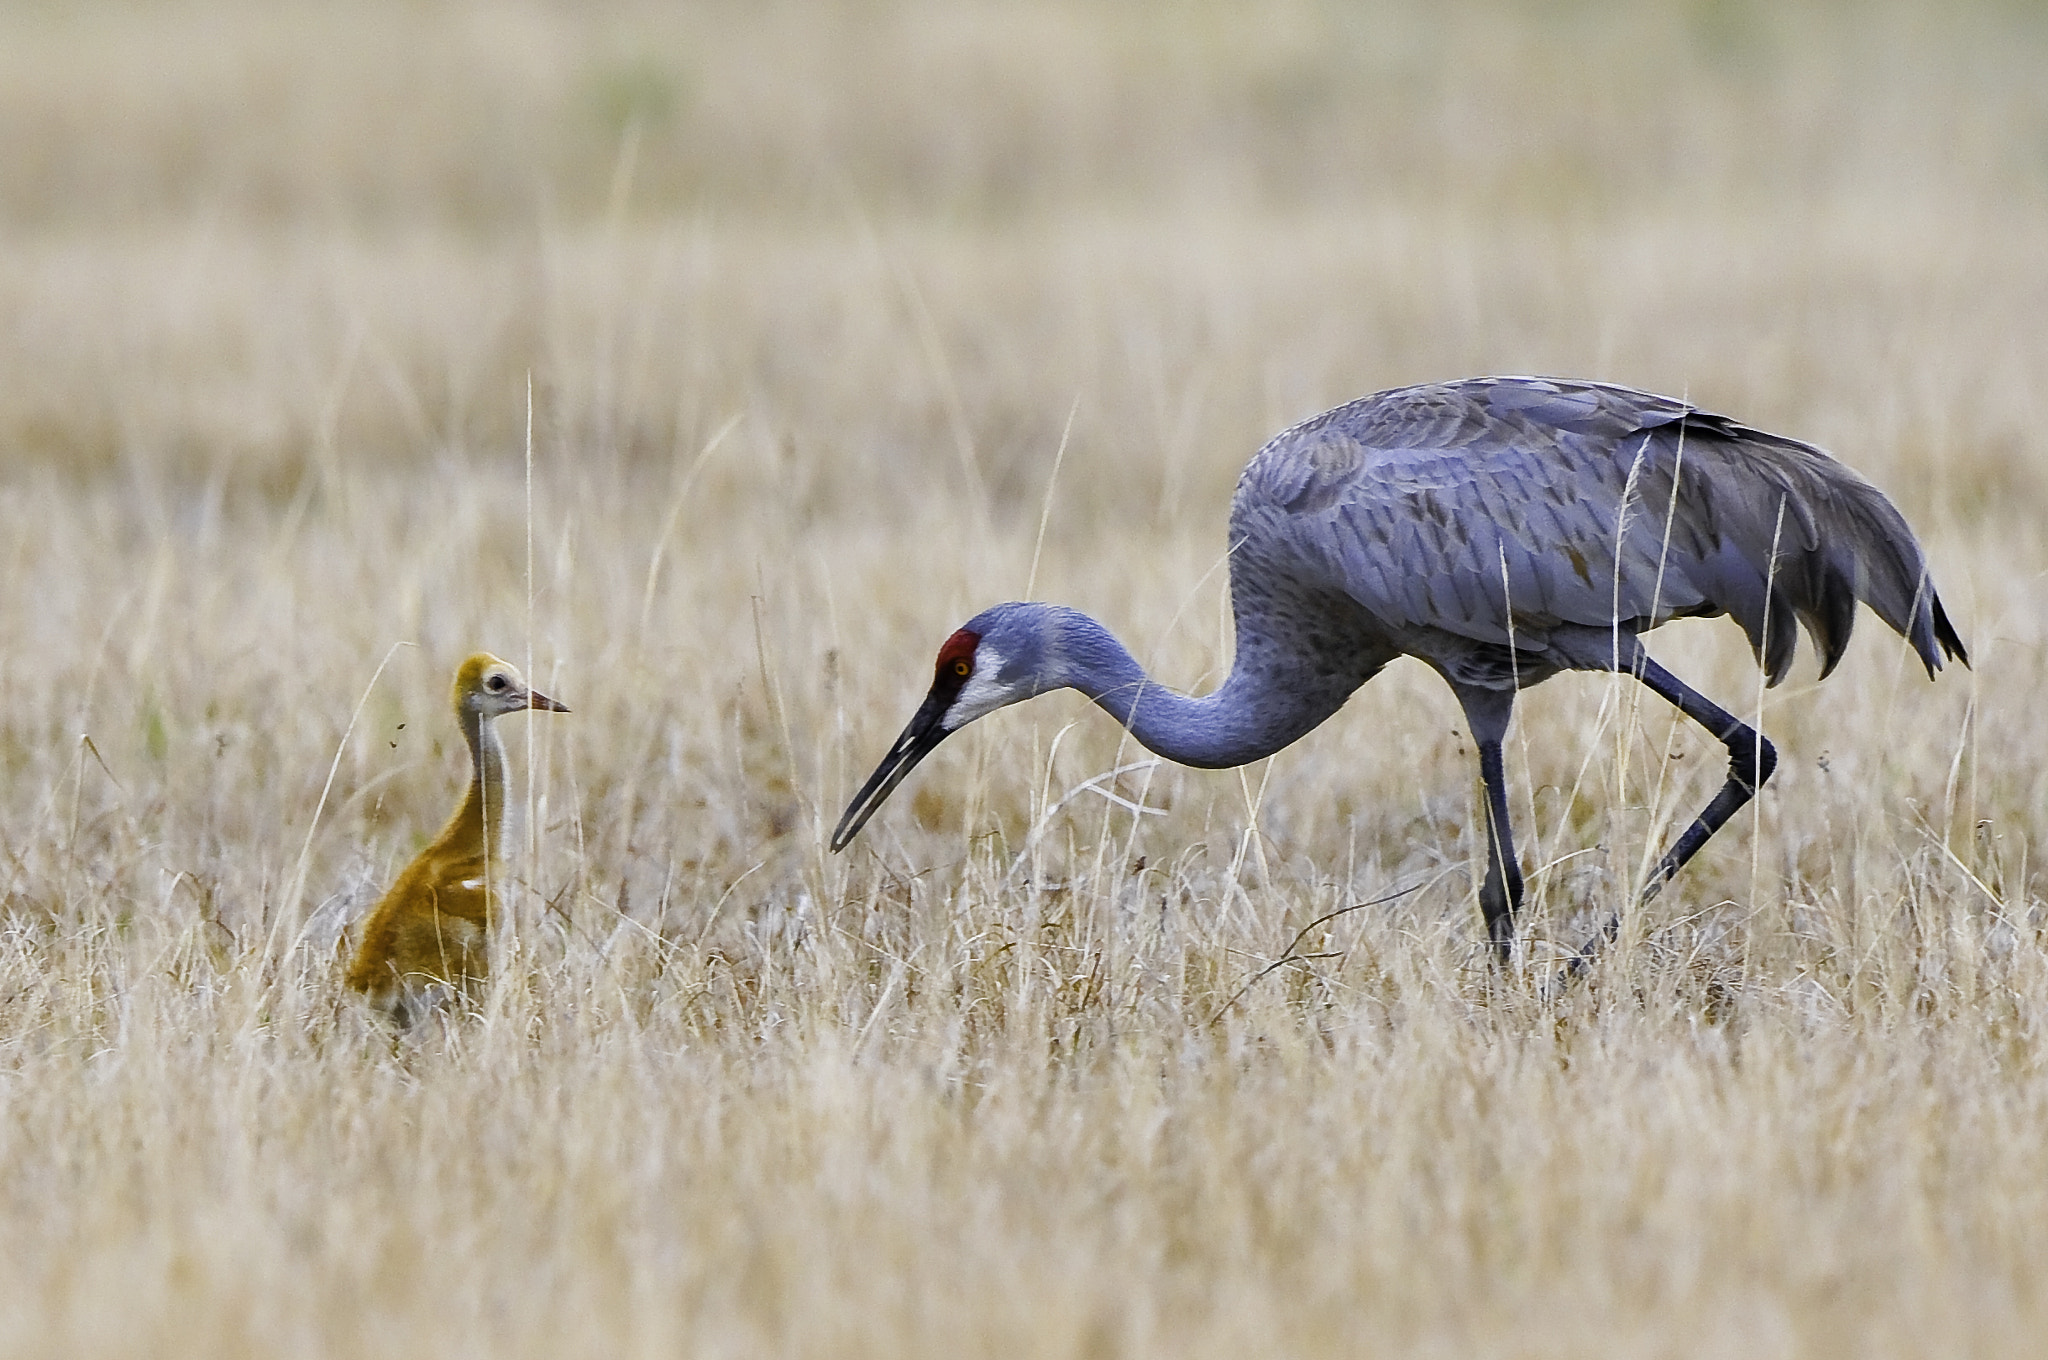 Photograph sandhill crane by Michael Leggero on 500px